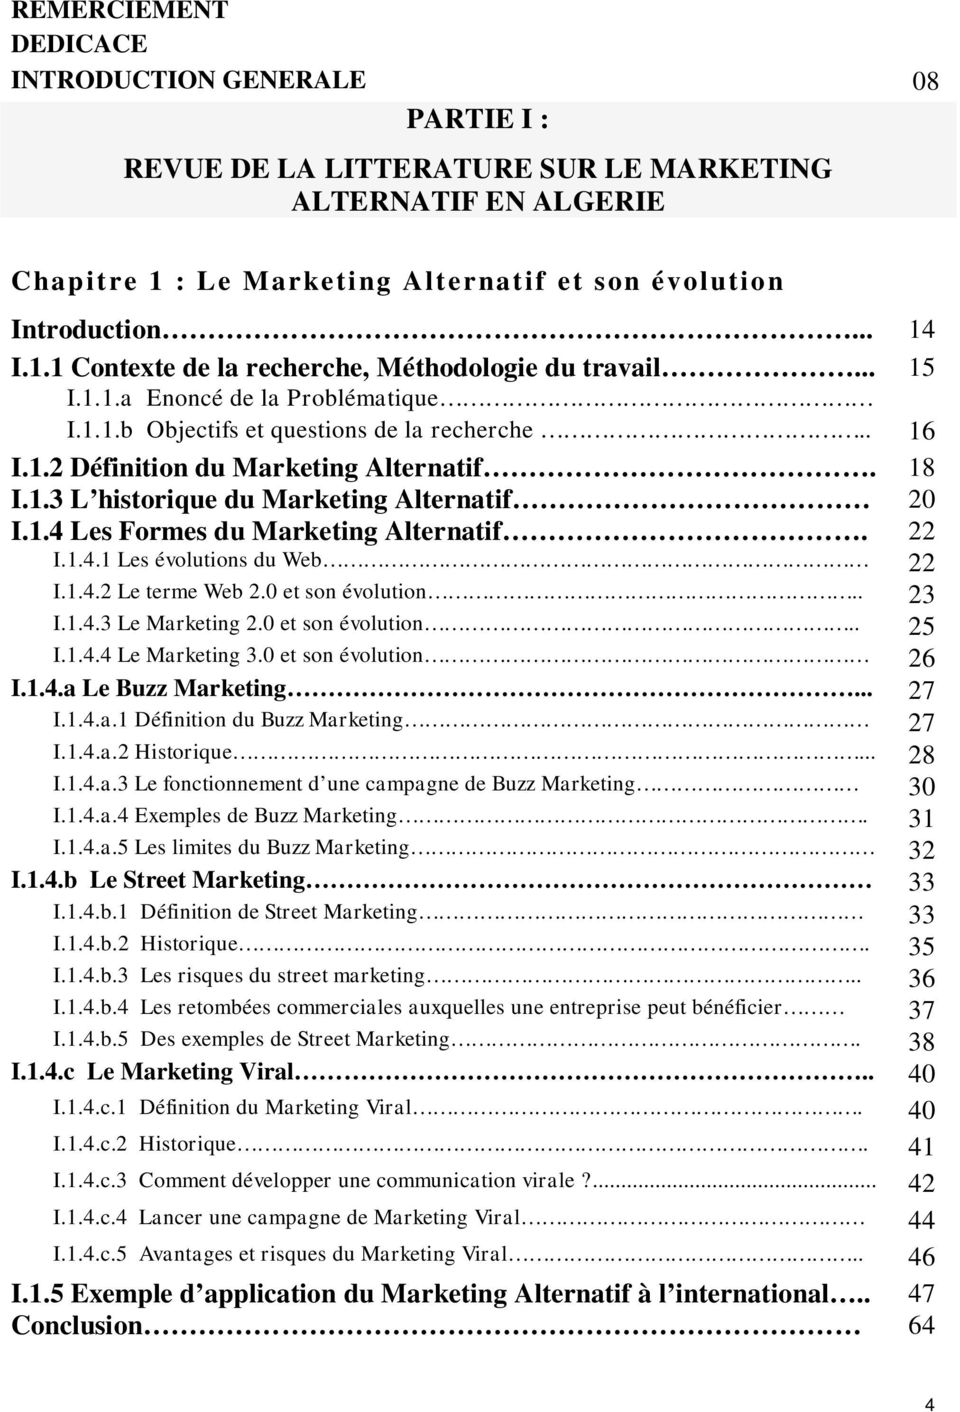 22 I.1.4.1 Les évolutions du Web 22 I.1.4.2 Le terme Web 2.0 et son évolution.. 23 I.1.4.3 Le Marketing 2.0 et son évolution.. 25 I.1.4.4 Le Marketing 3.0 et son évolution 26 I.1.4.a Le Buzz Marketing.